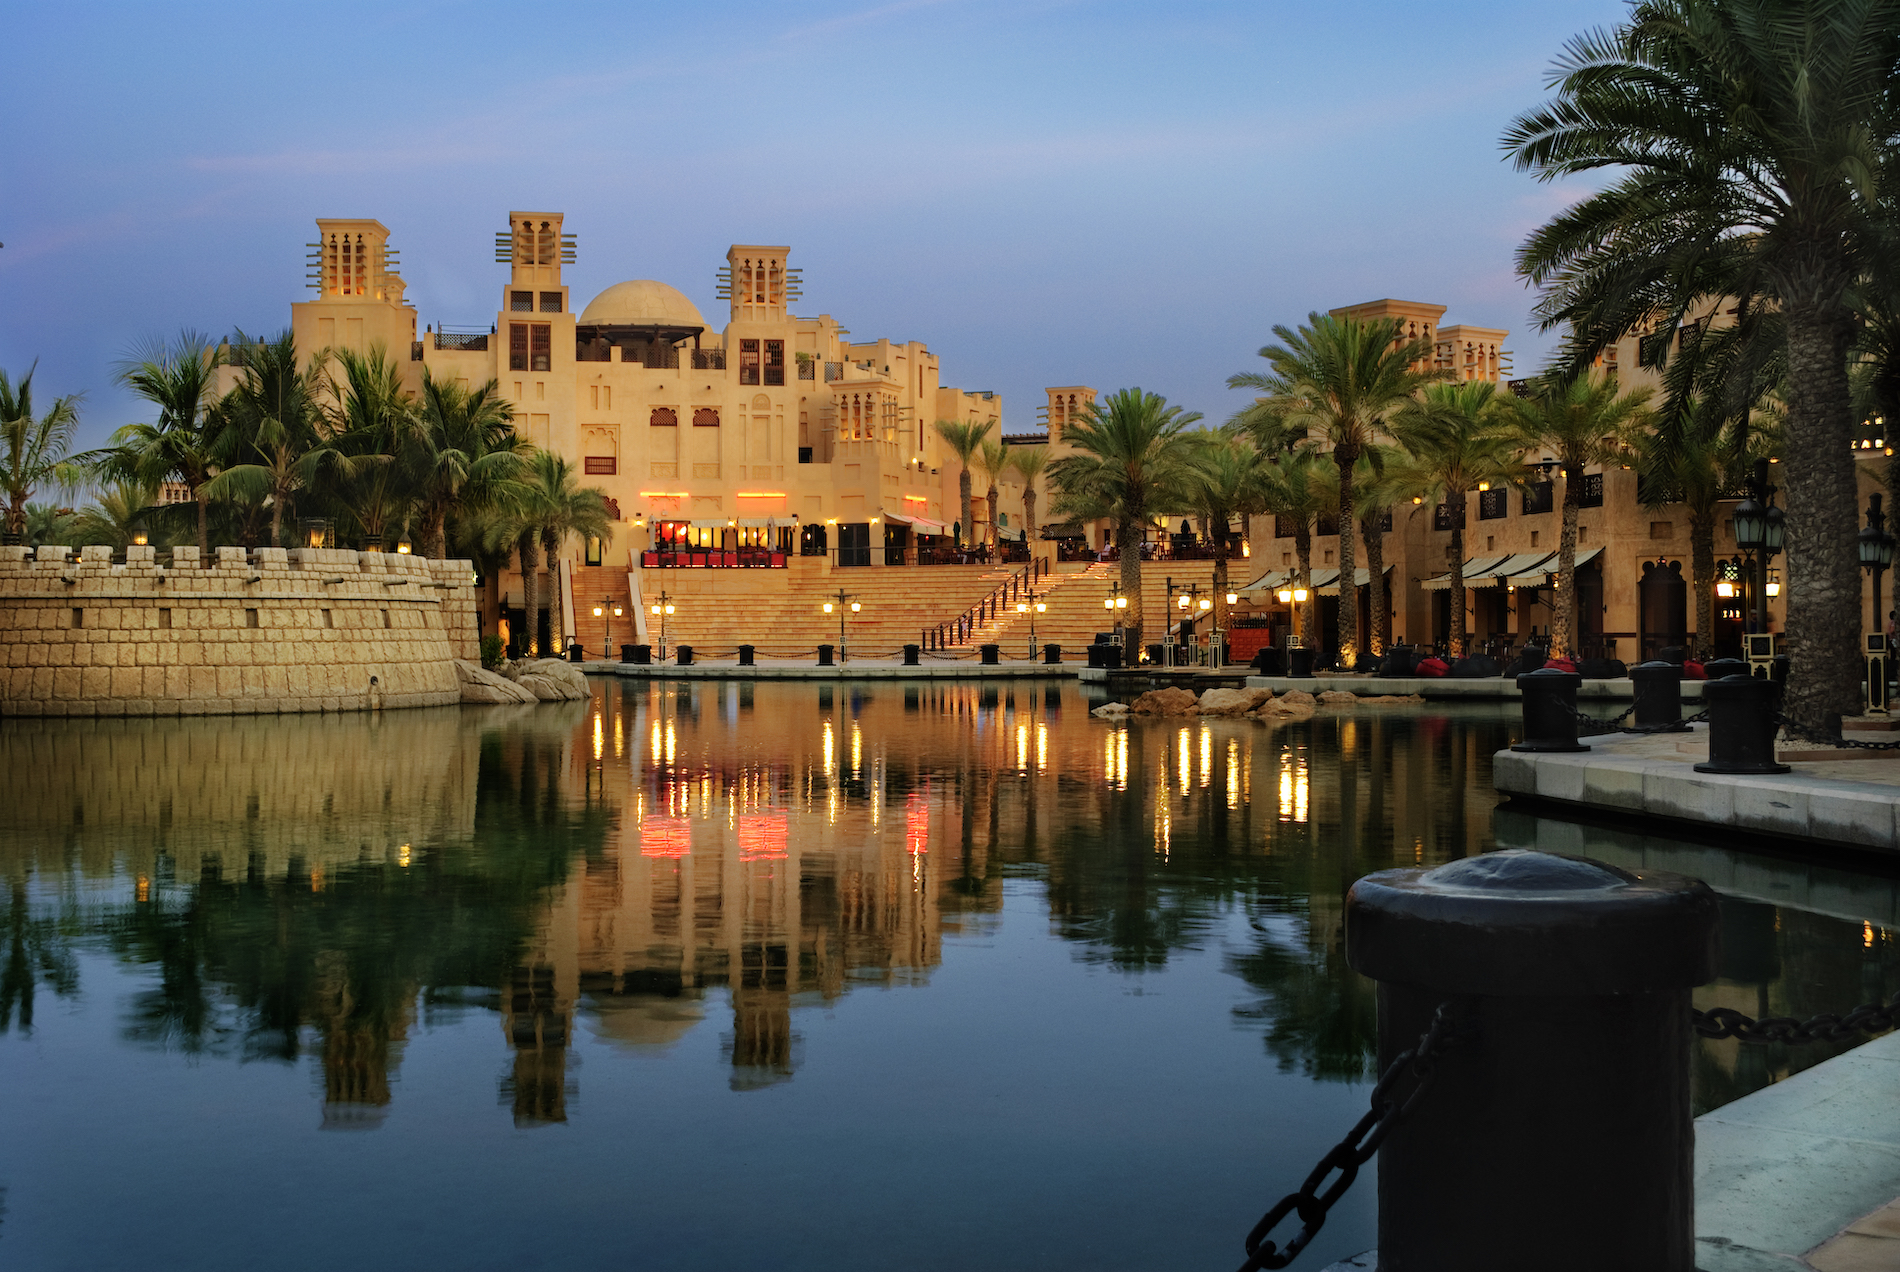 UAE tourism records 63 percent average hotel occupancy rates in Q1 2021 - a growth of 34 percent